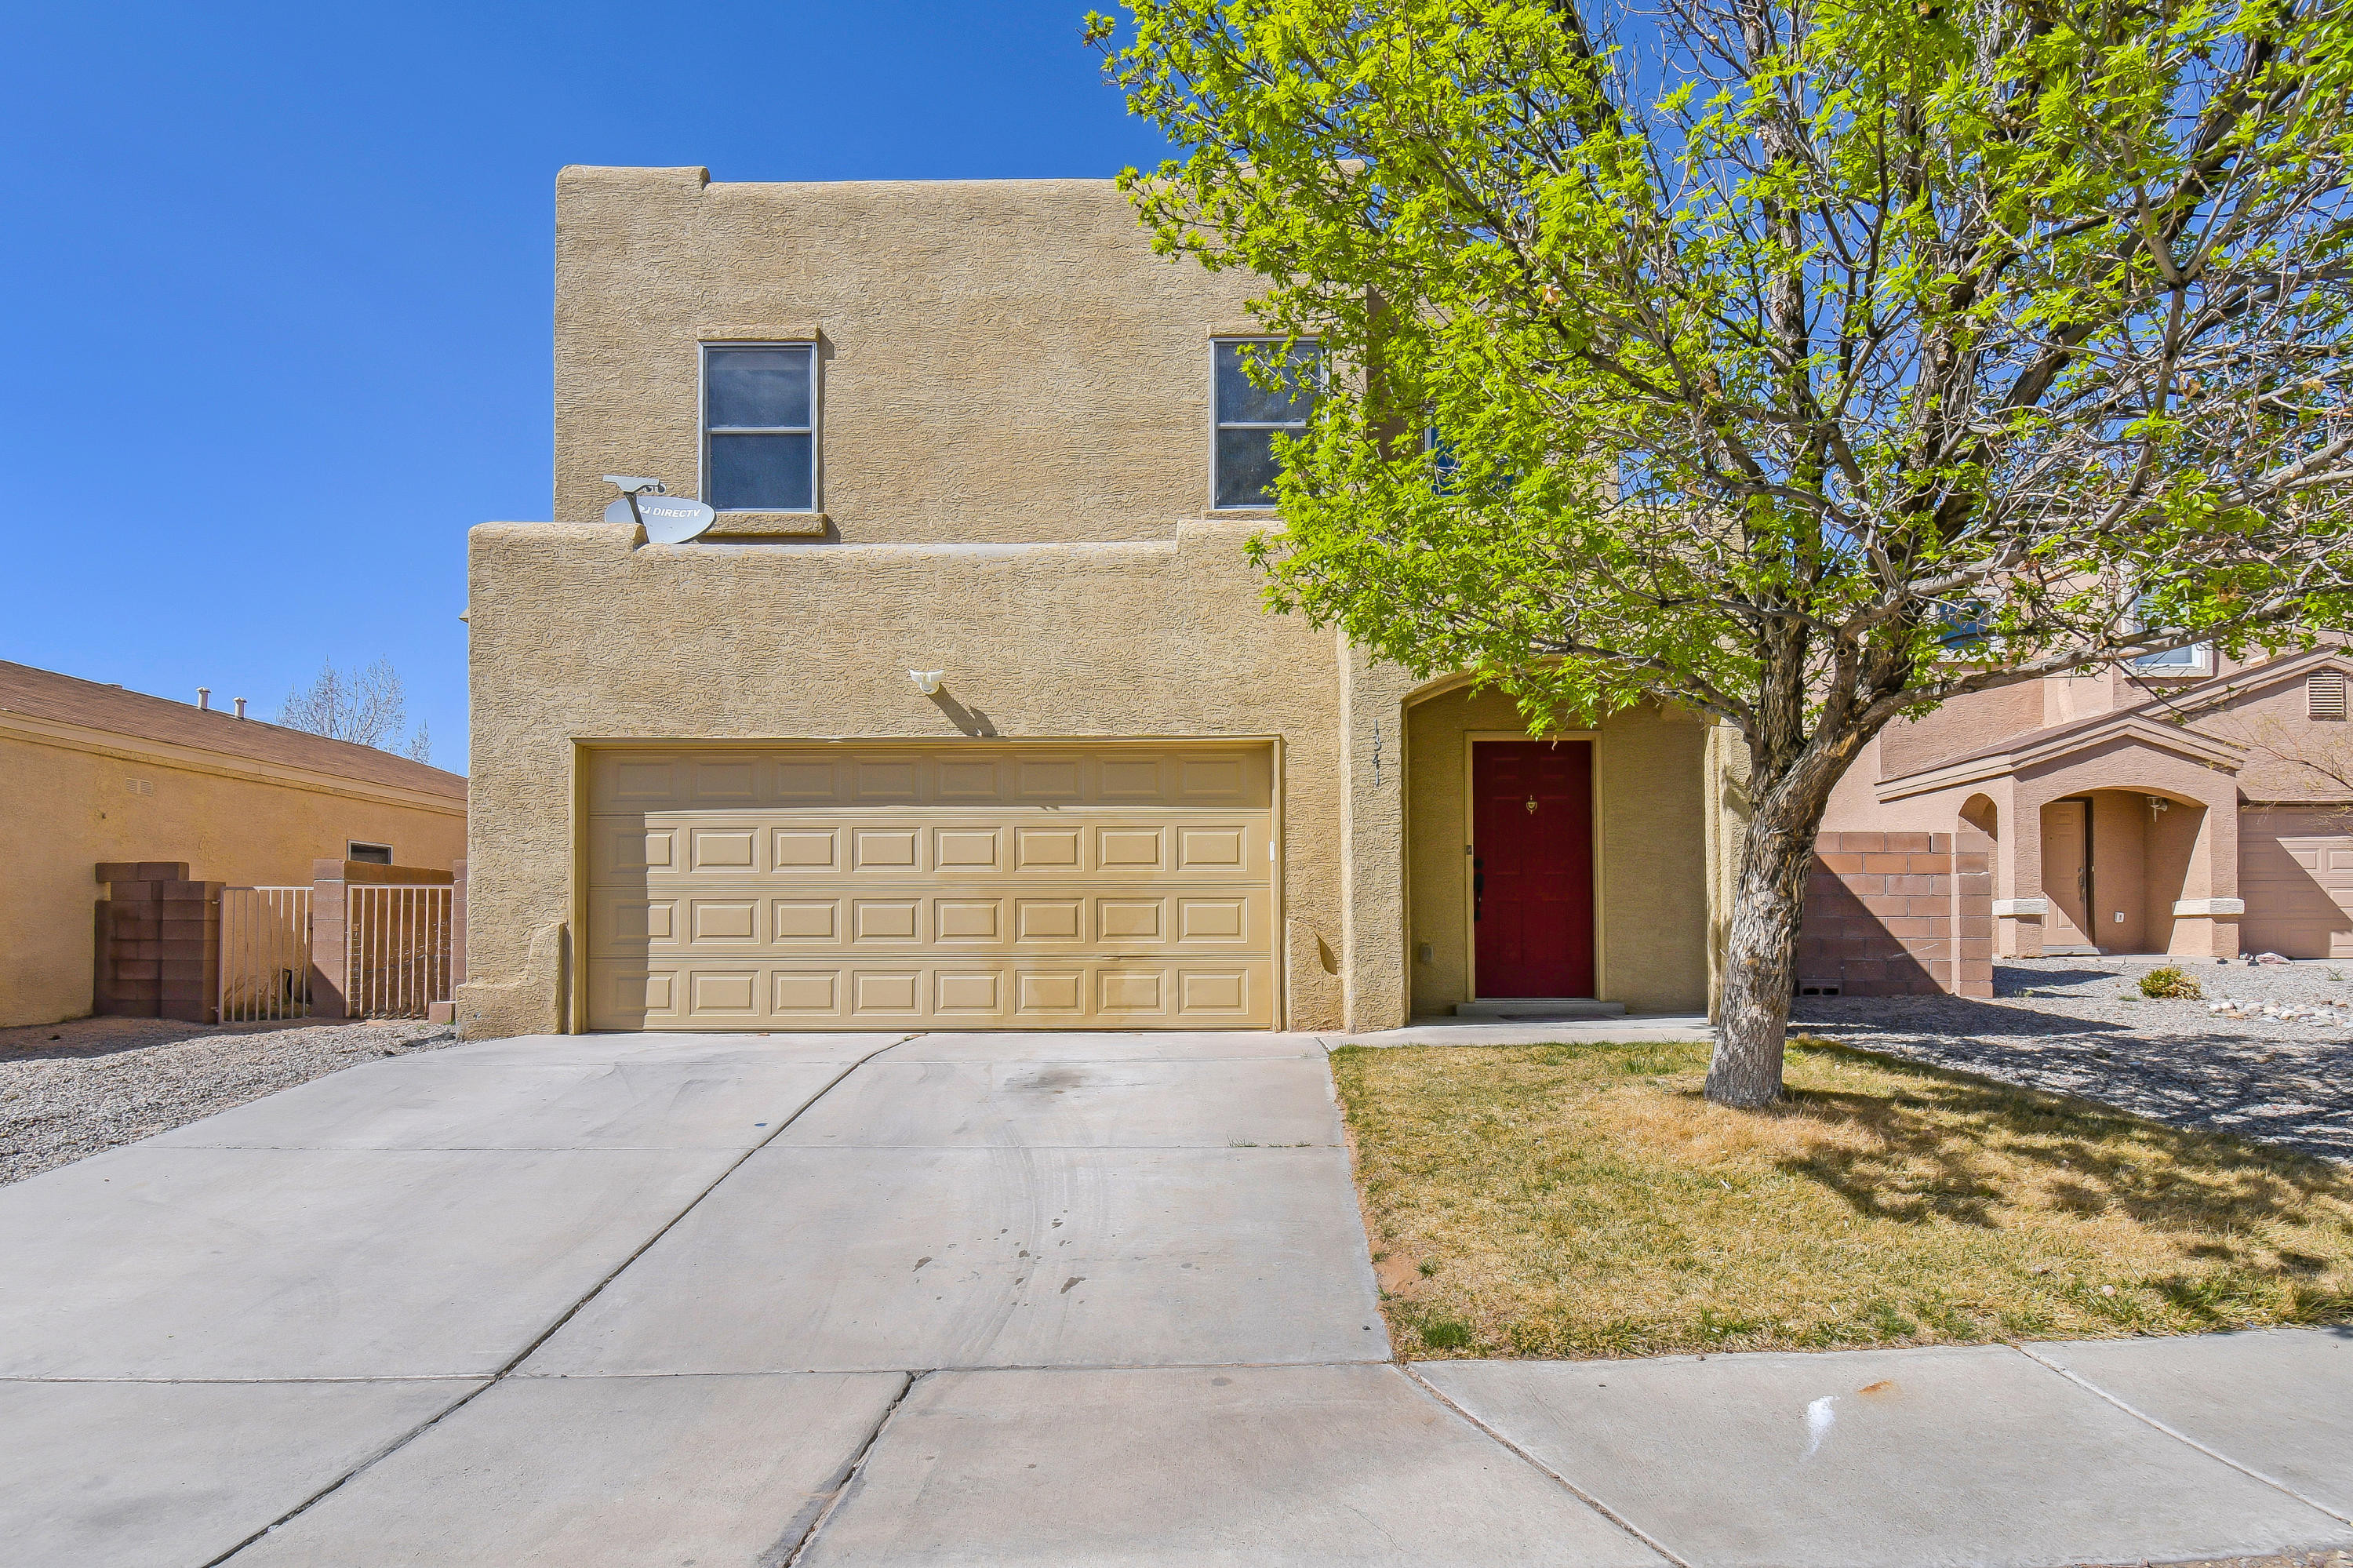 Open House Saturday 4/17 from 1-3 and Sunday 4/18 from 1-3! Located in Northern Meadows! Cozy up to the Gas Log Kiva fireplace in the living room! Enjoy making memories in the open concept kitchen and living room that is perfect for entertaining! The kitchen features a large pantry, a gas range and room for a kitchen island! Lots of natural light! The Master suite has two walk-in closets and double sinks in the bathroom! The laundry room is conveniently located upstairs making laundry day a breeze! The Large backyard is ready for your creative ideas! a virtual walkthrough tour and an interactive floor plan!! Home is being sold AS IS.